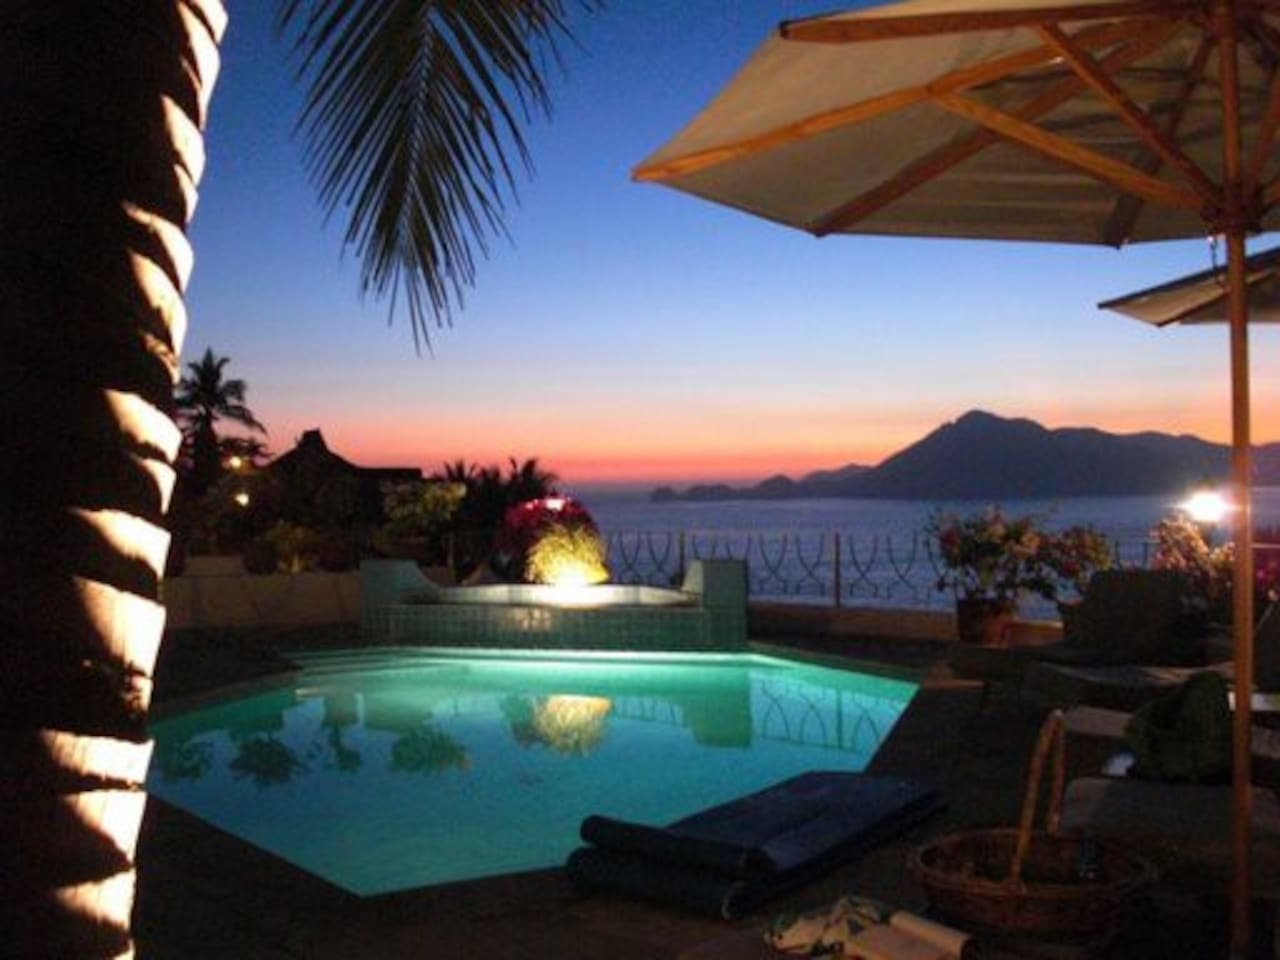 Lower pool overlooking Bay and Pacific Ocean view from palapa